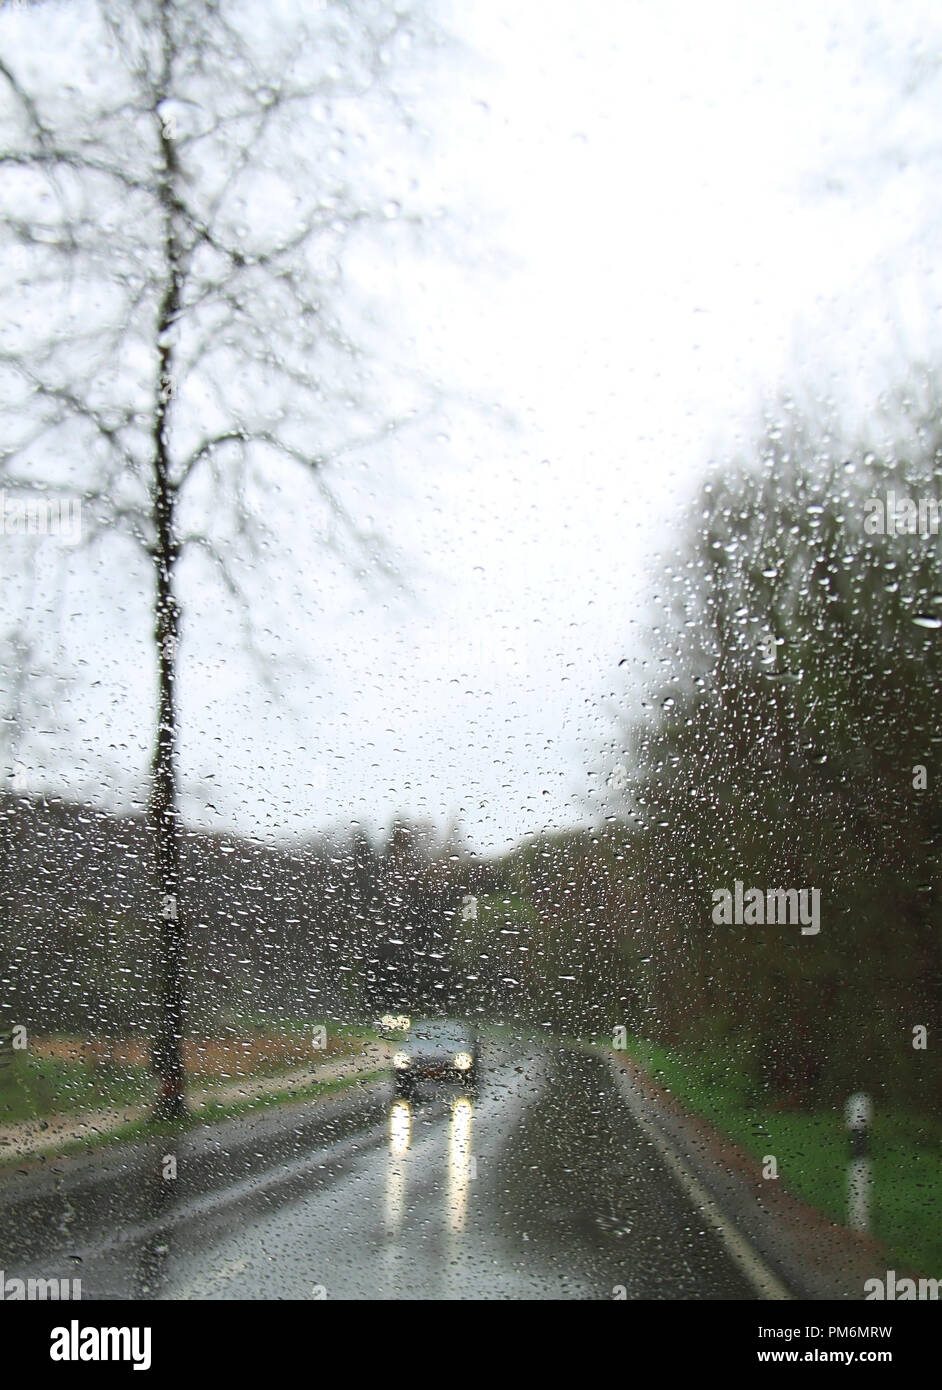 A car with headlights on viewed through a raindrop-covered windshield. Stock Photo